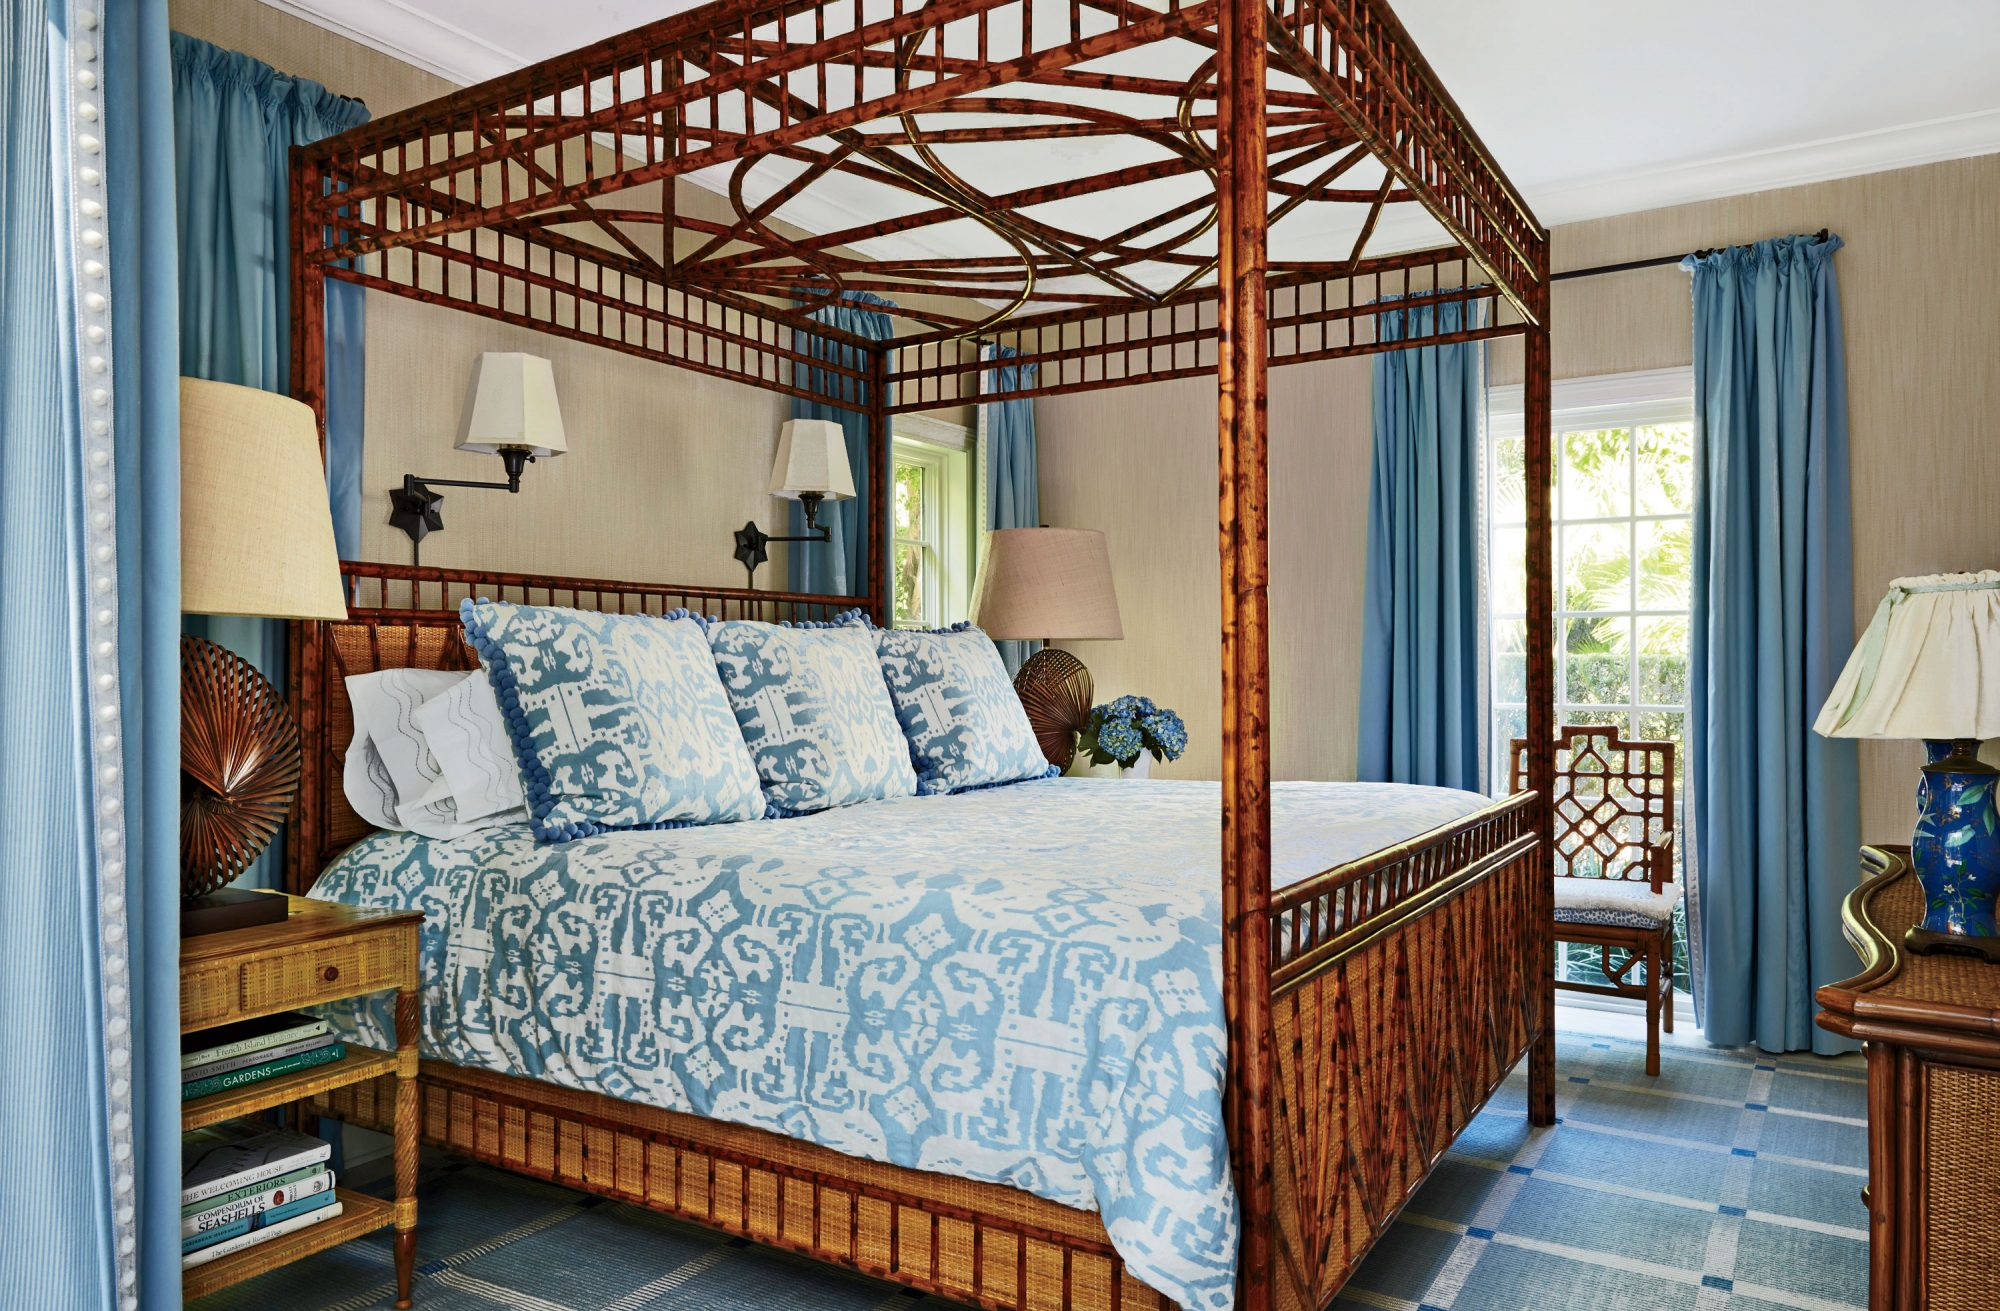 Because the wicker and bamboo bed frame almost reaches the ceiling, the designer of this Florida bedroom added two oversize nautilus lamps to keep the scale consistent.